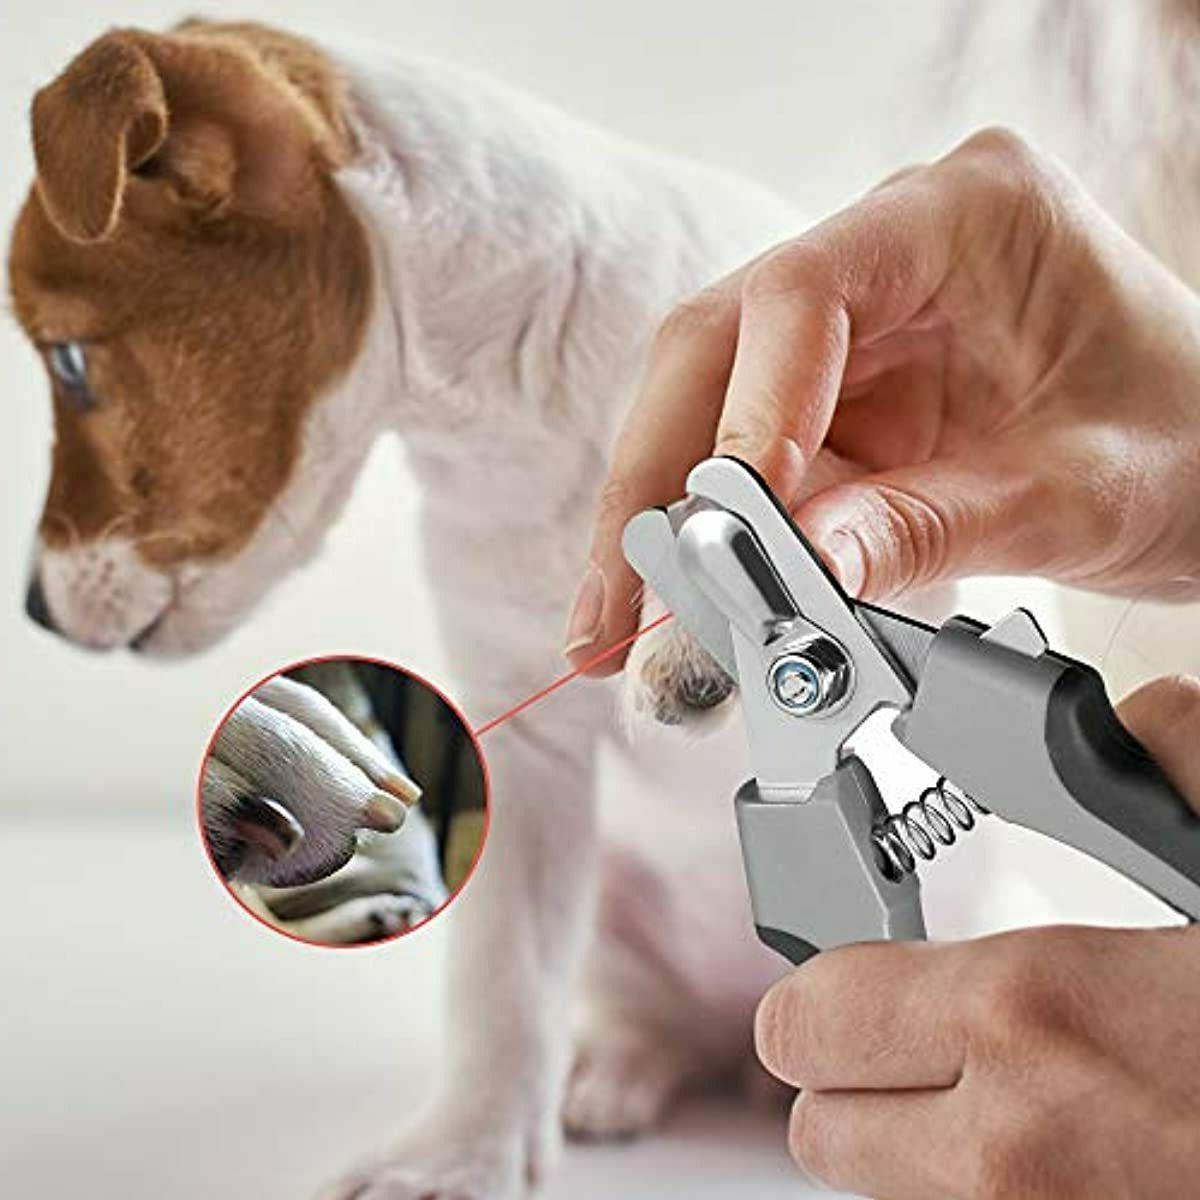 Dog Nail Nail Trimmer Large with Prof